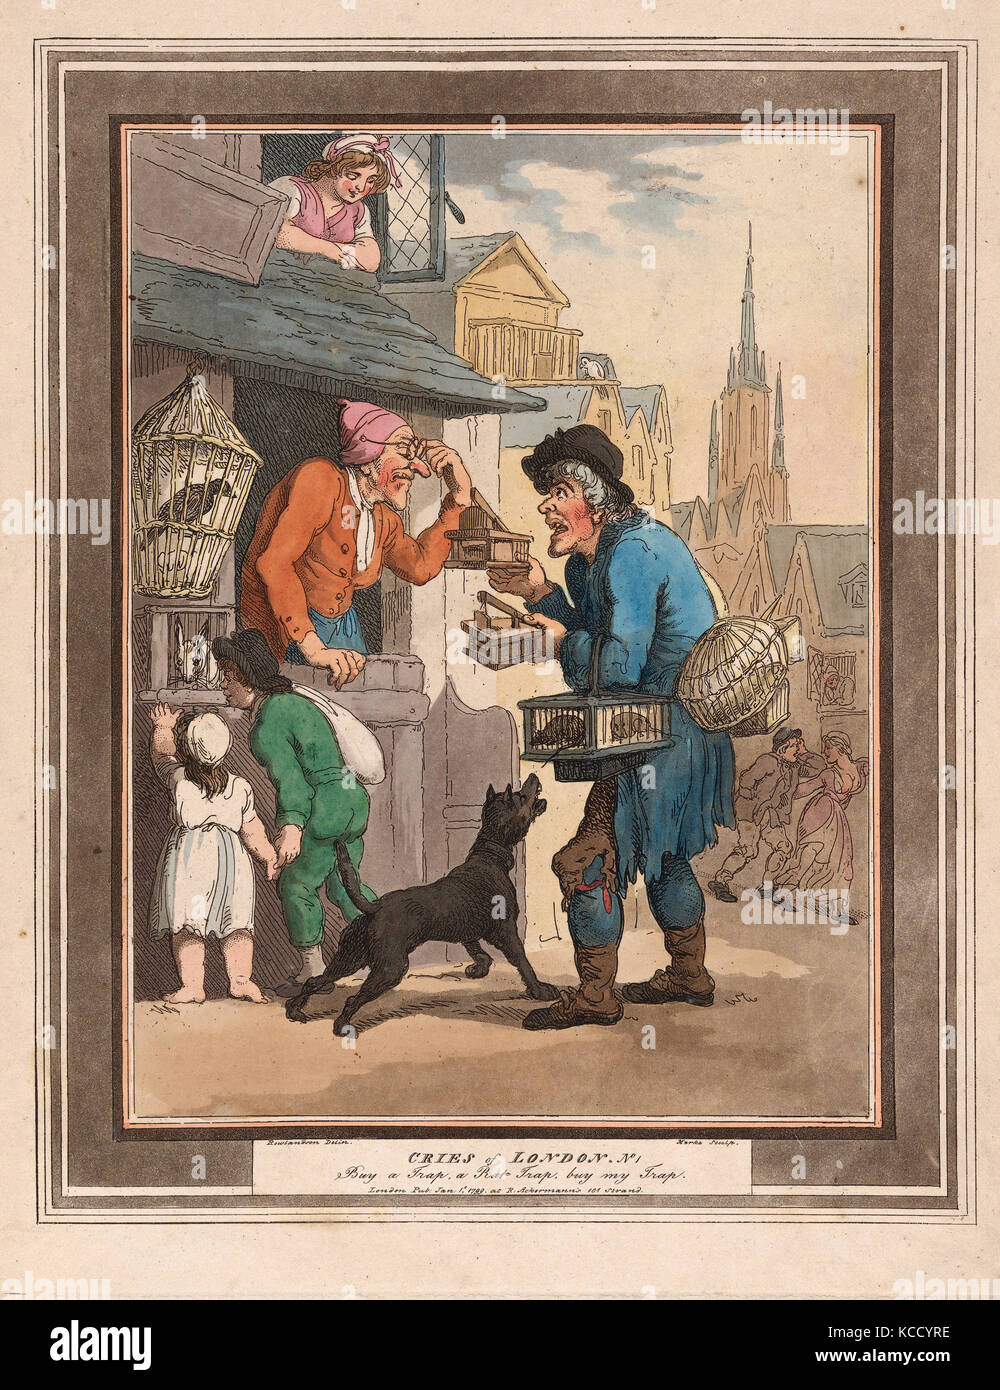 Drawings and Prints, Print, Cries of London: No.1: Buy a Trap, a Rat-Trap, Cries of London - Stock Image